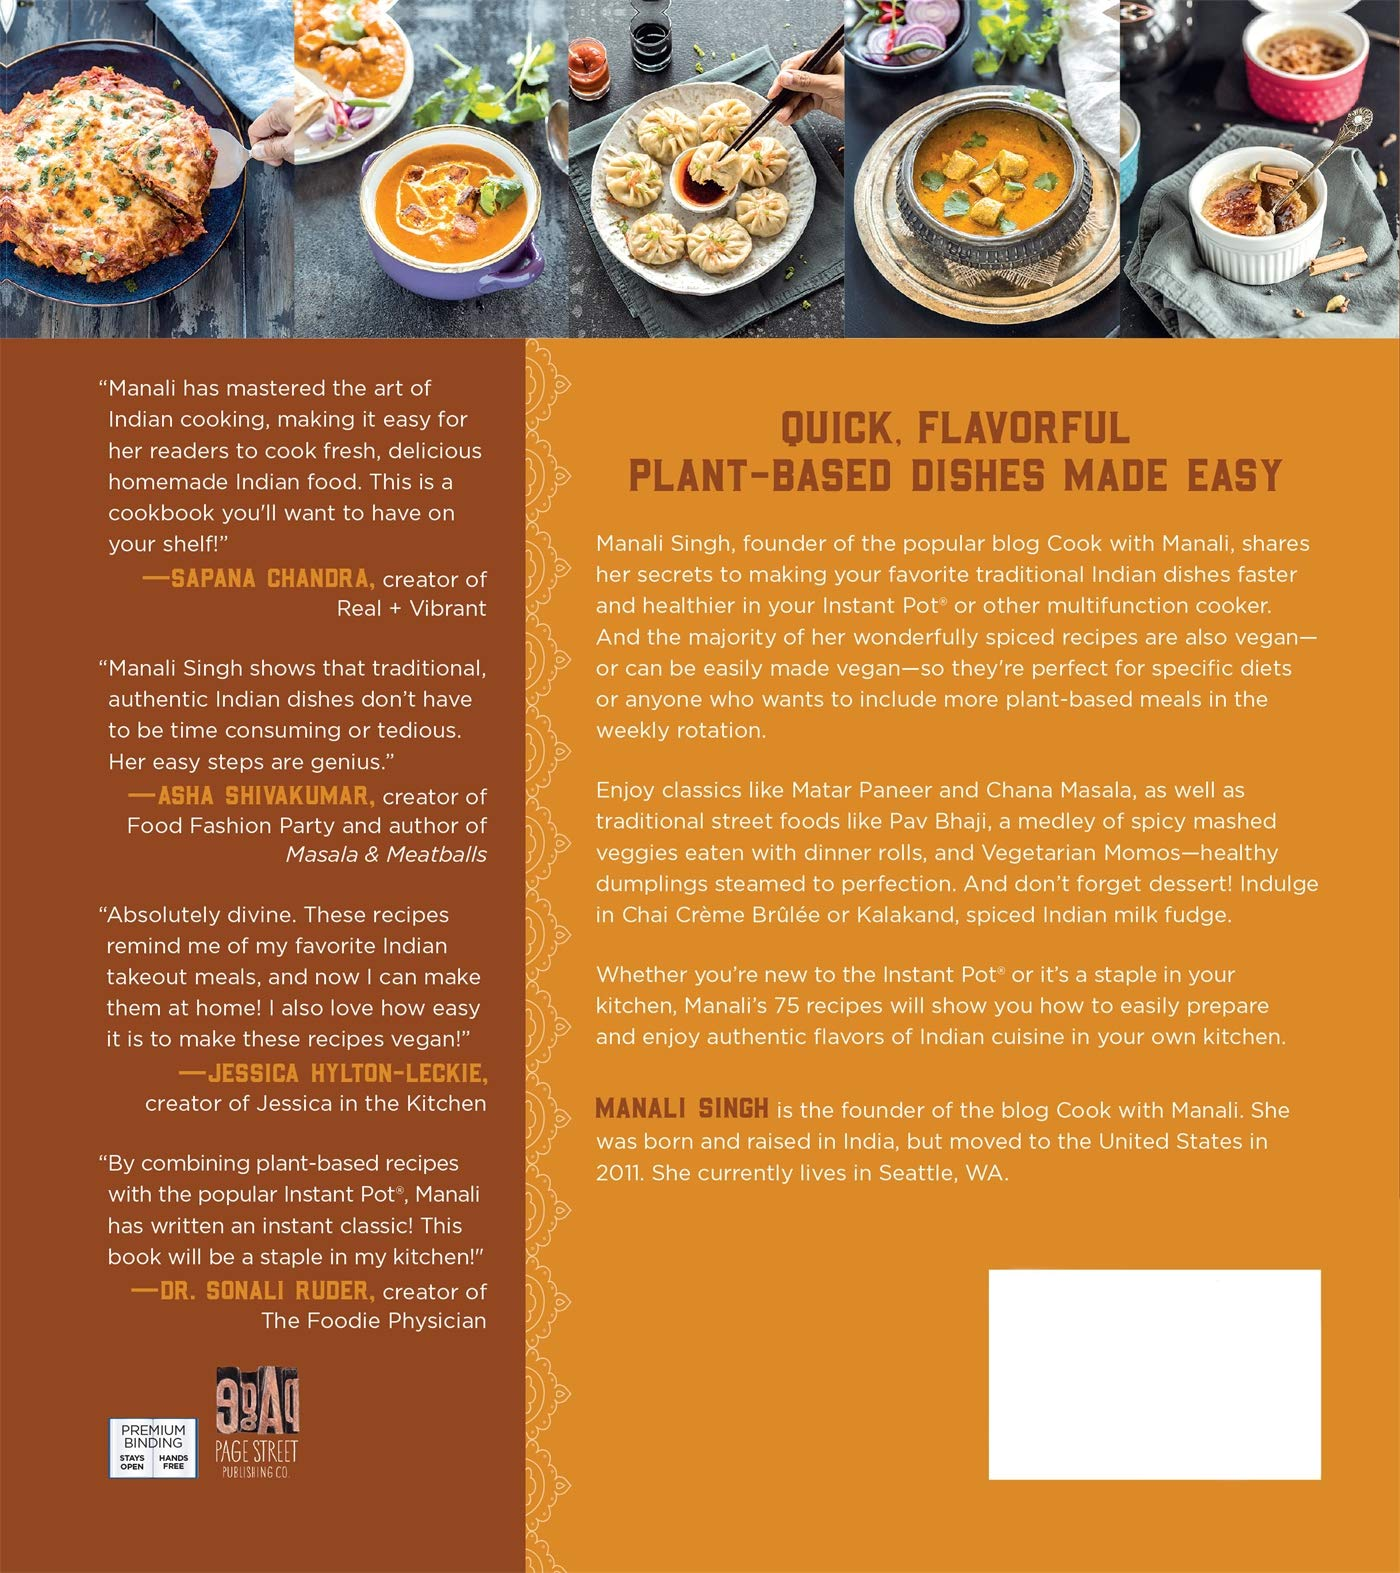 seattle cookbook enjoy authentic american cooking from seattle